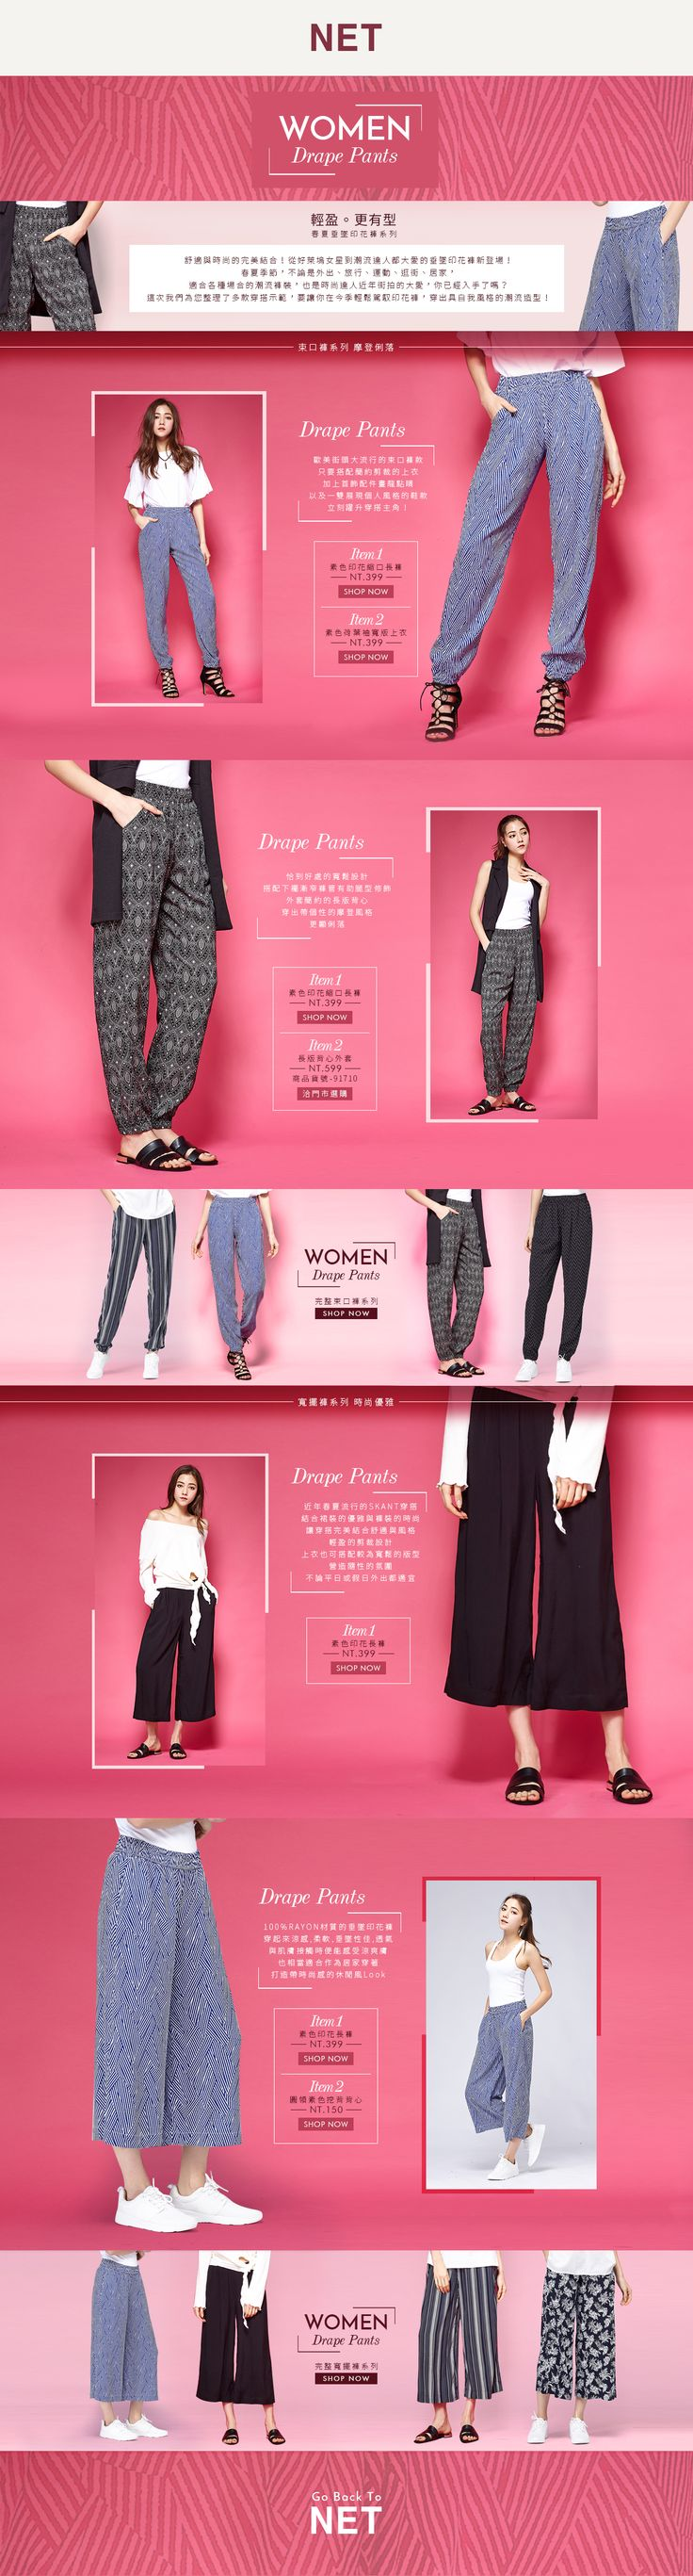 Women Drape Pants on Behance